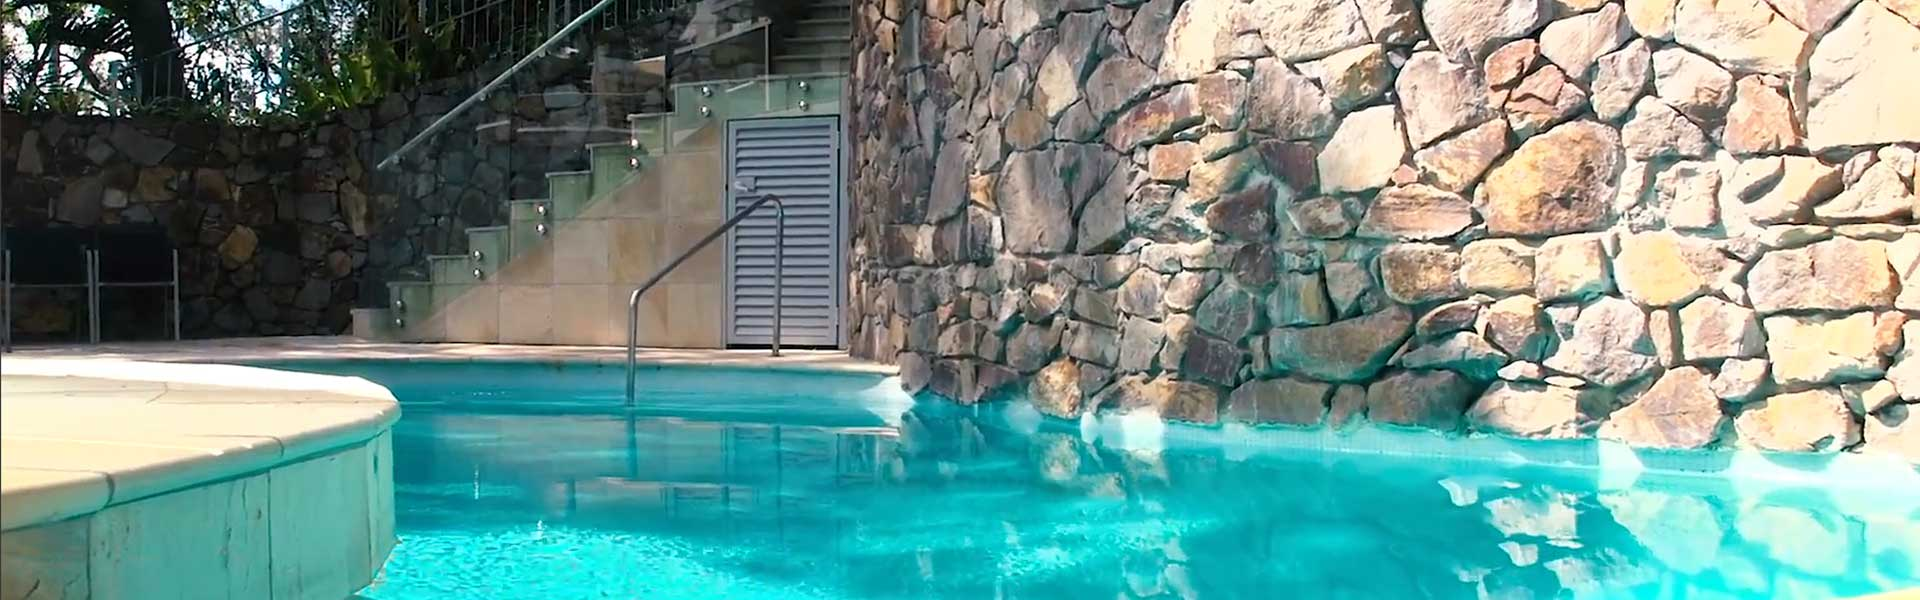 Pool Little Cove Court, noosa luxury accommodation